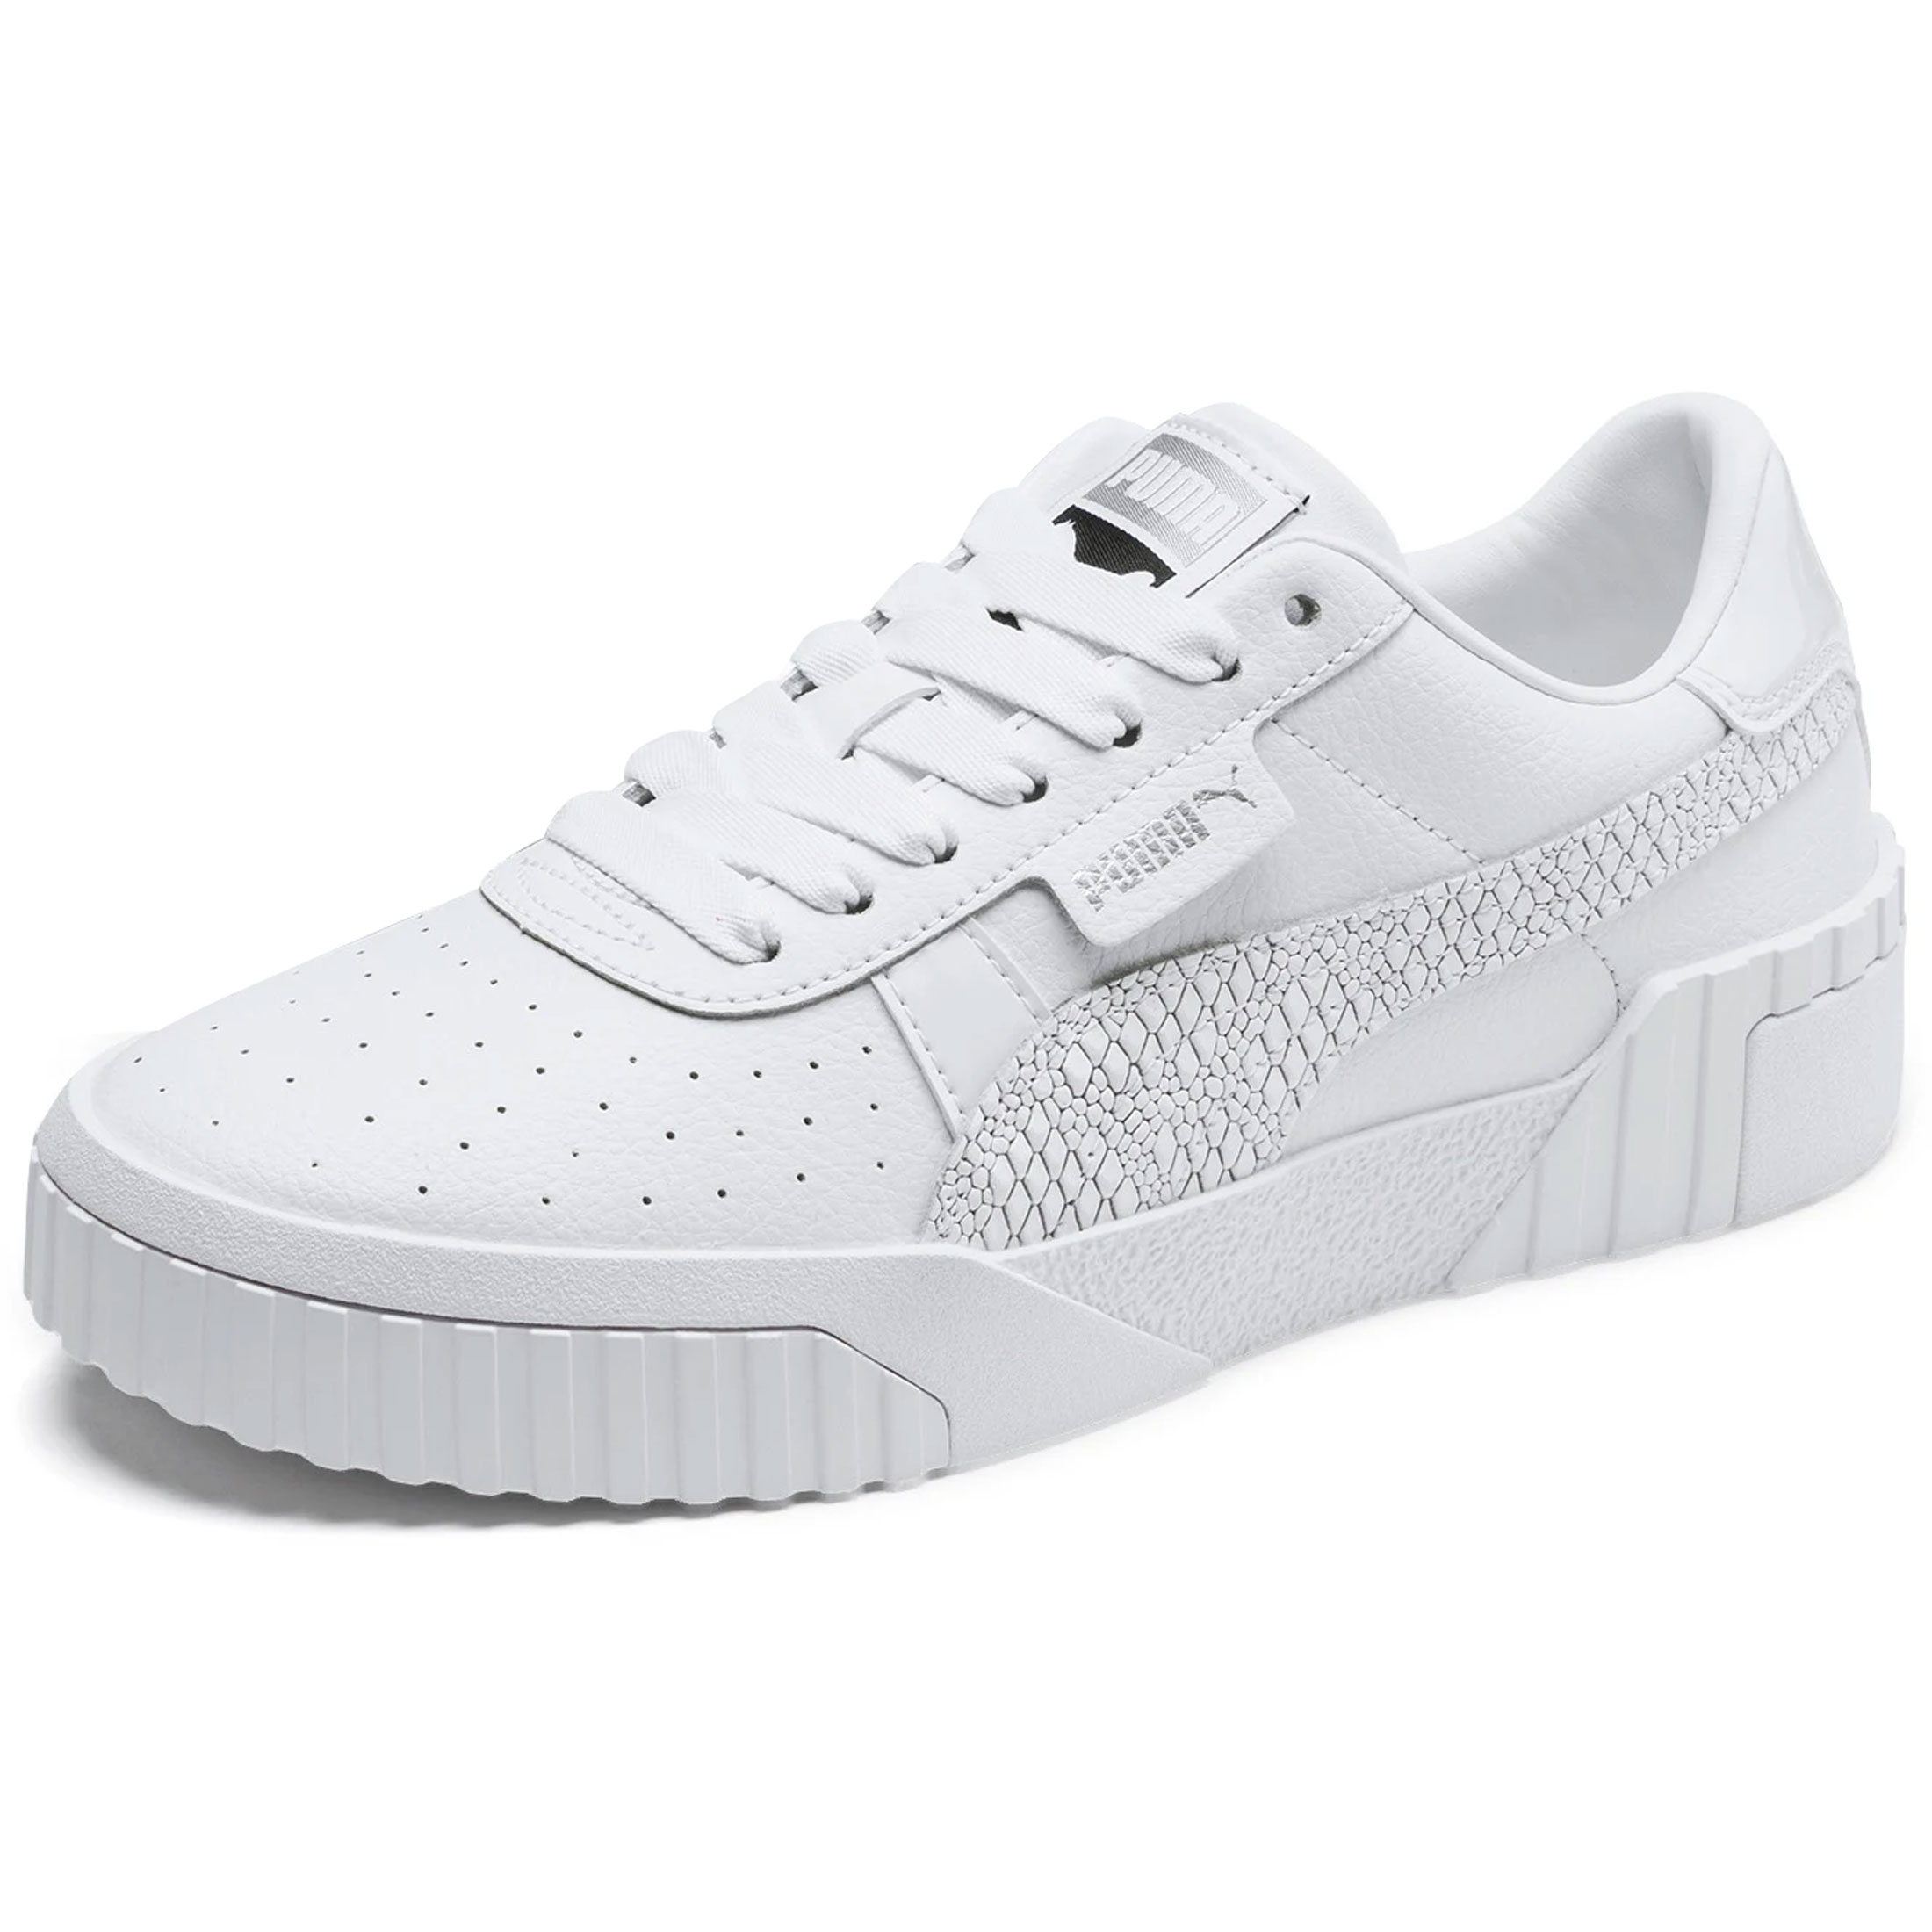 Puma Cali Snake W - Sneakers Low at Stylefile